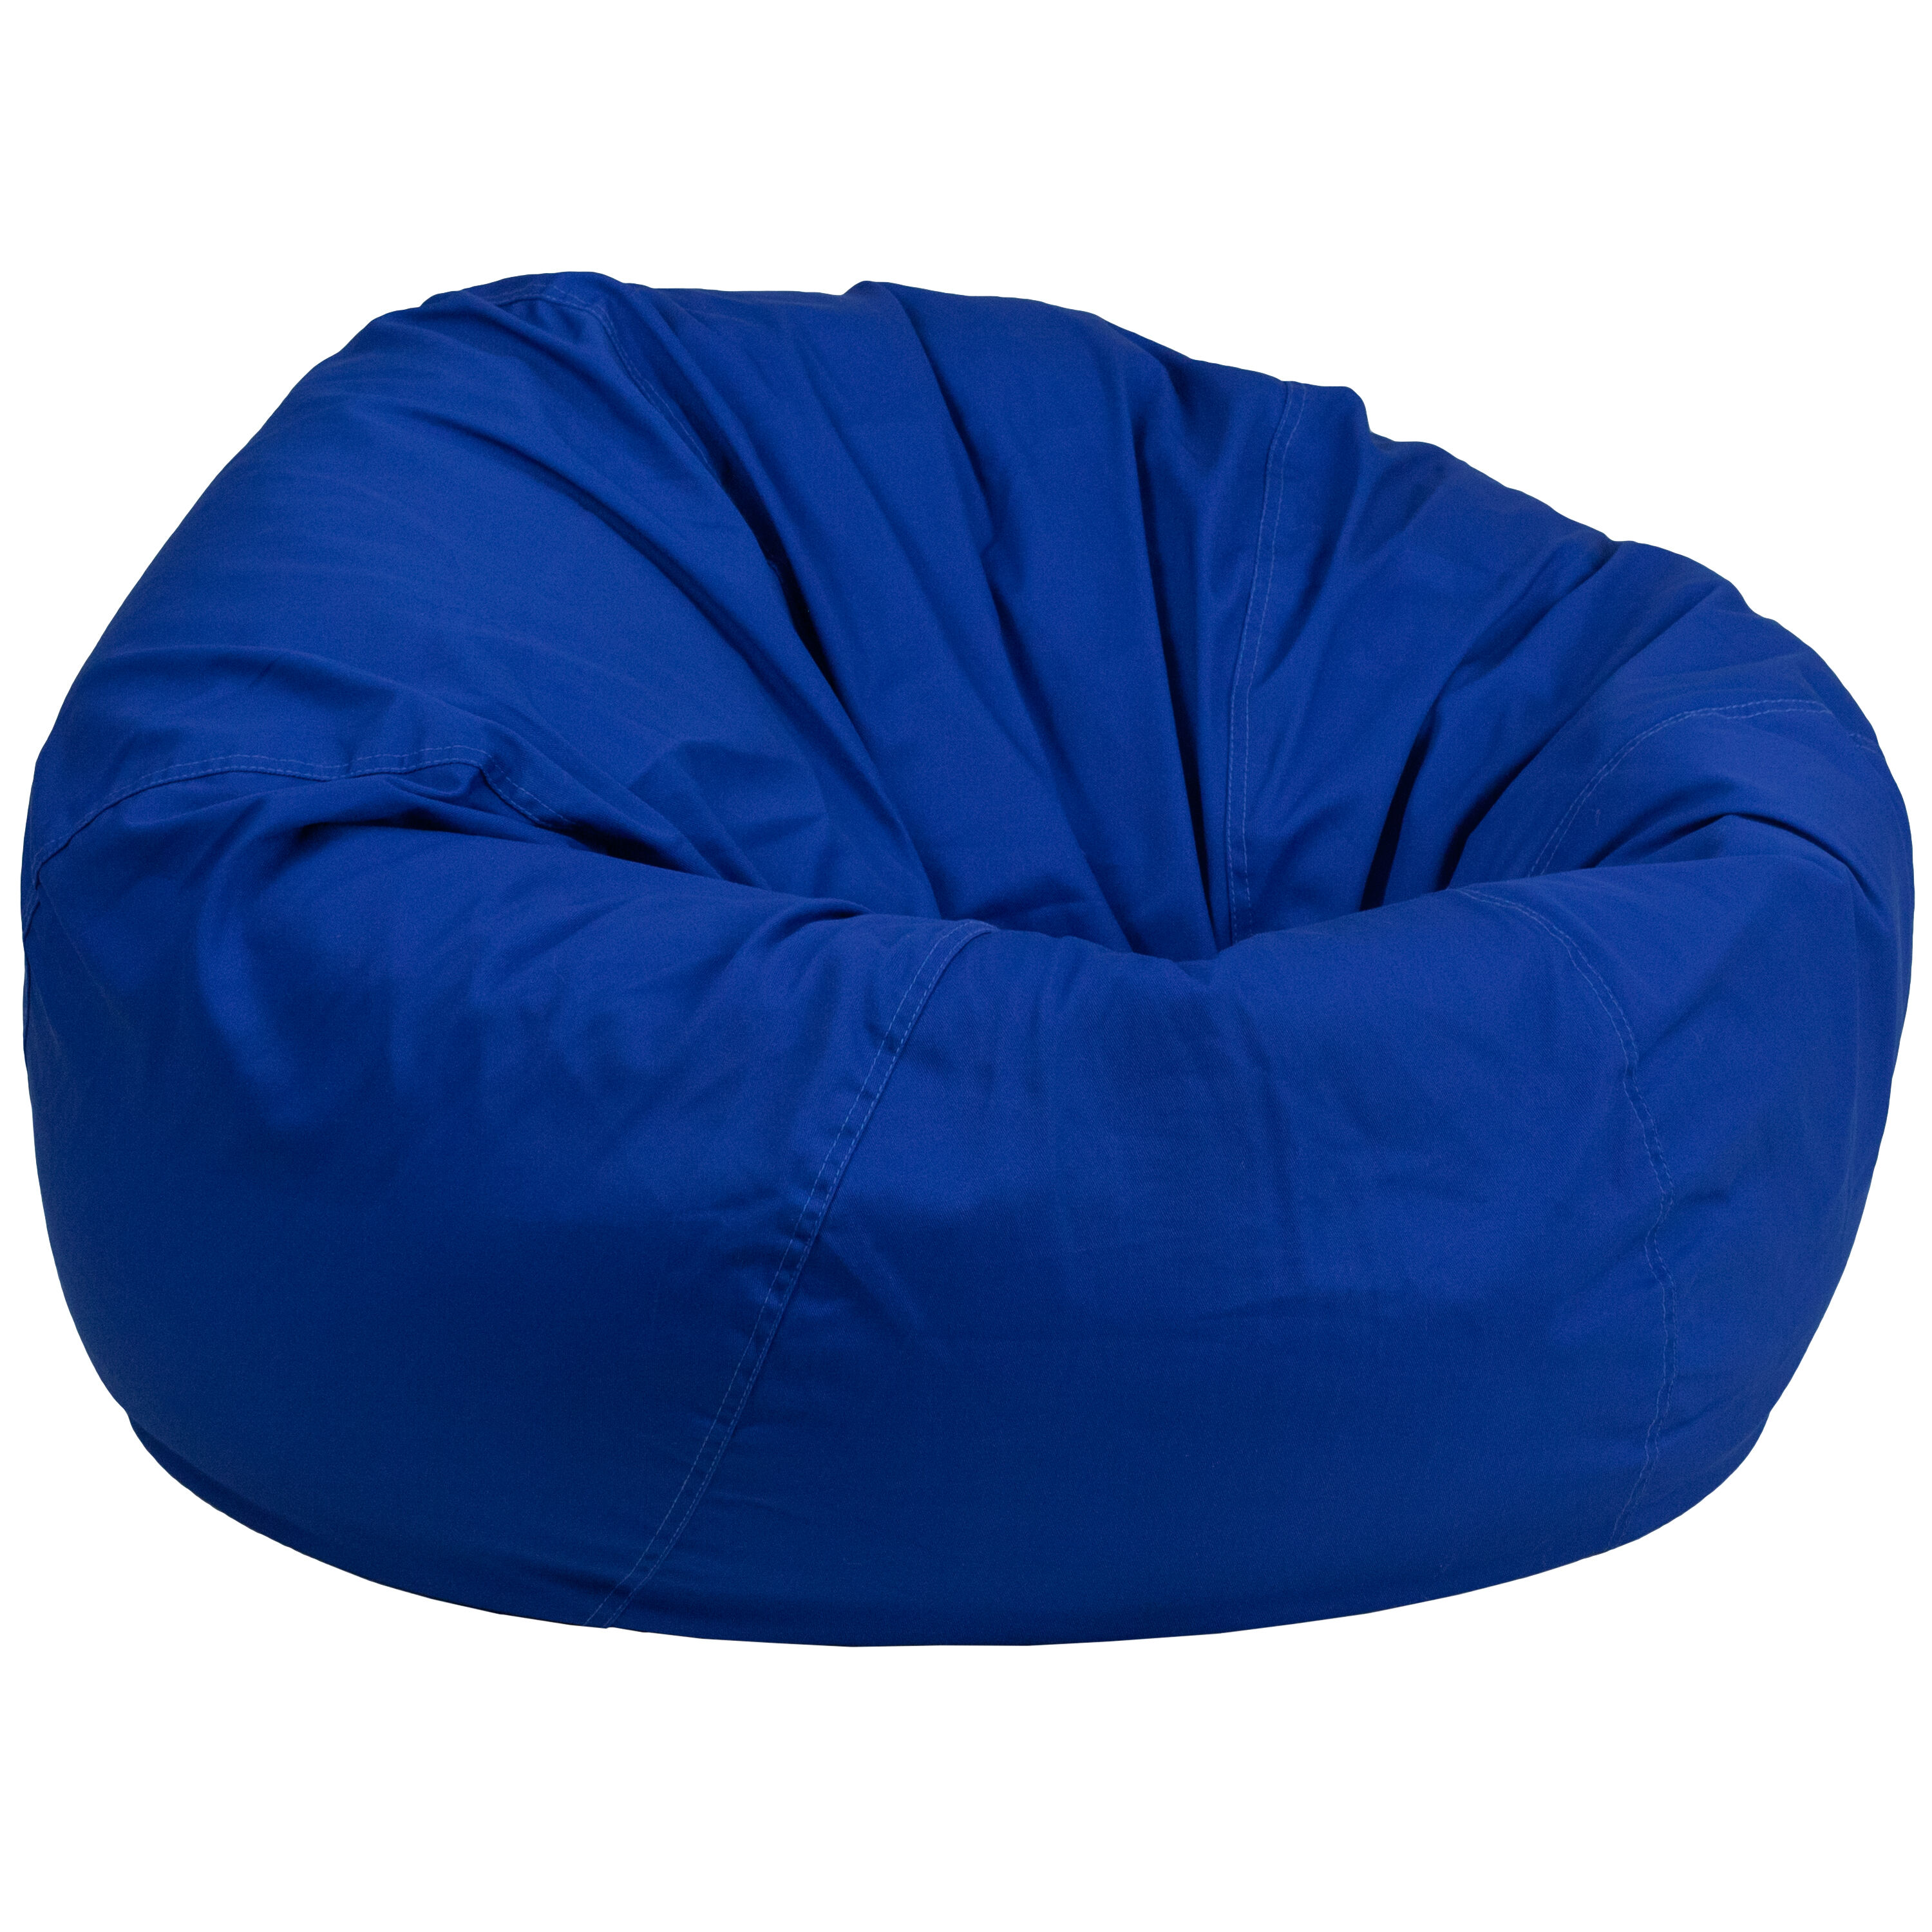 Where Can I Buy A Bean Bag Chair Oversized Solid Royal Blue Bean Bag Chair